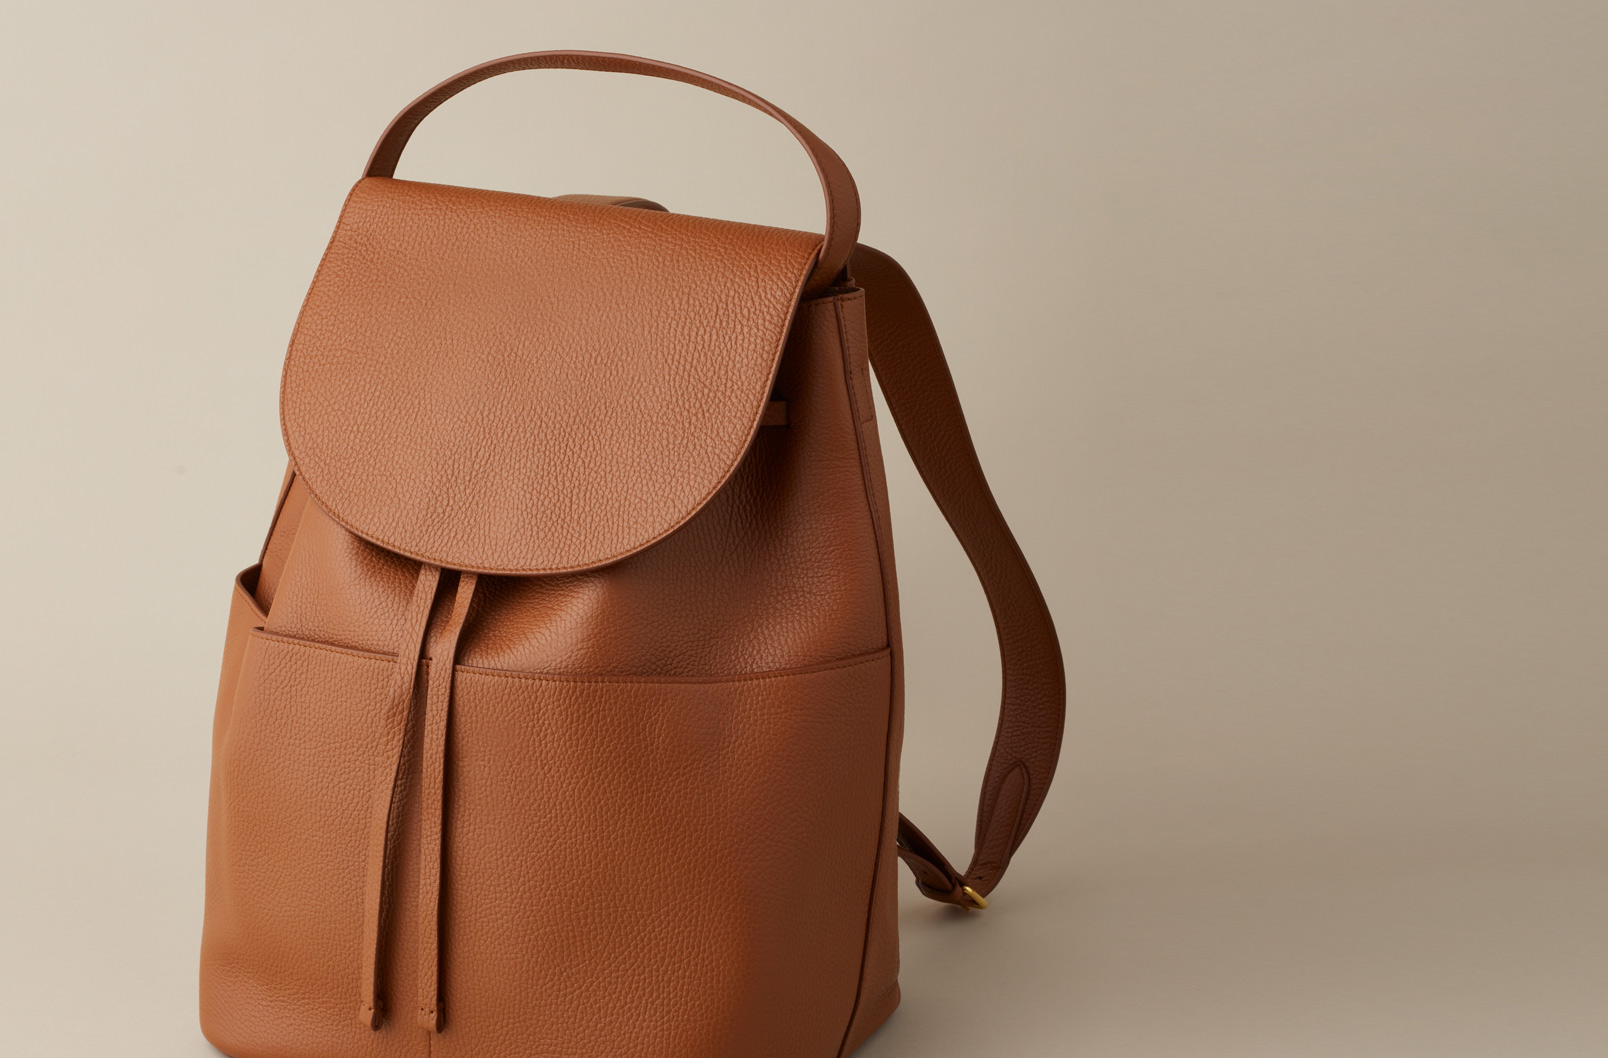 Image showing Large Leather Backpack in Caramel with flap closure, cinch ties, and exterior pockets